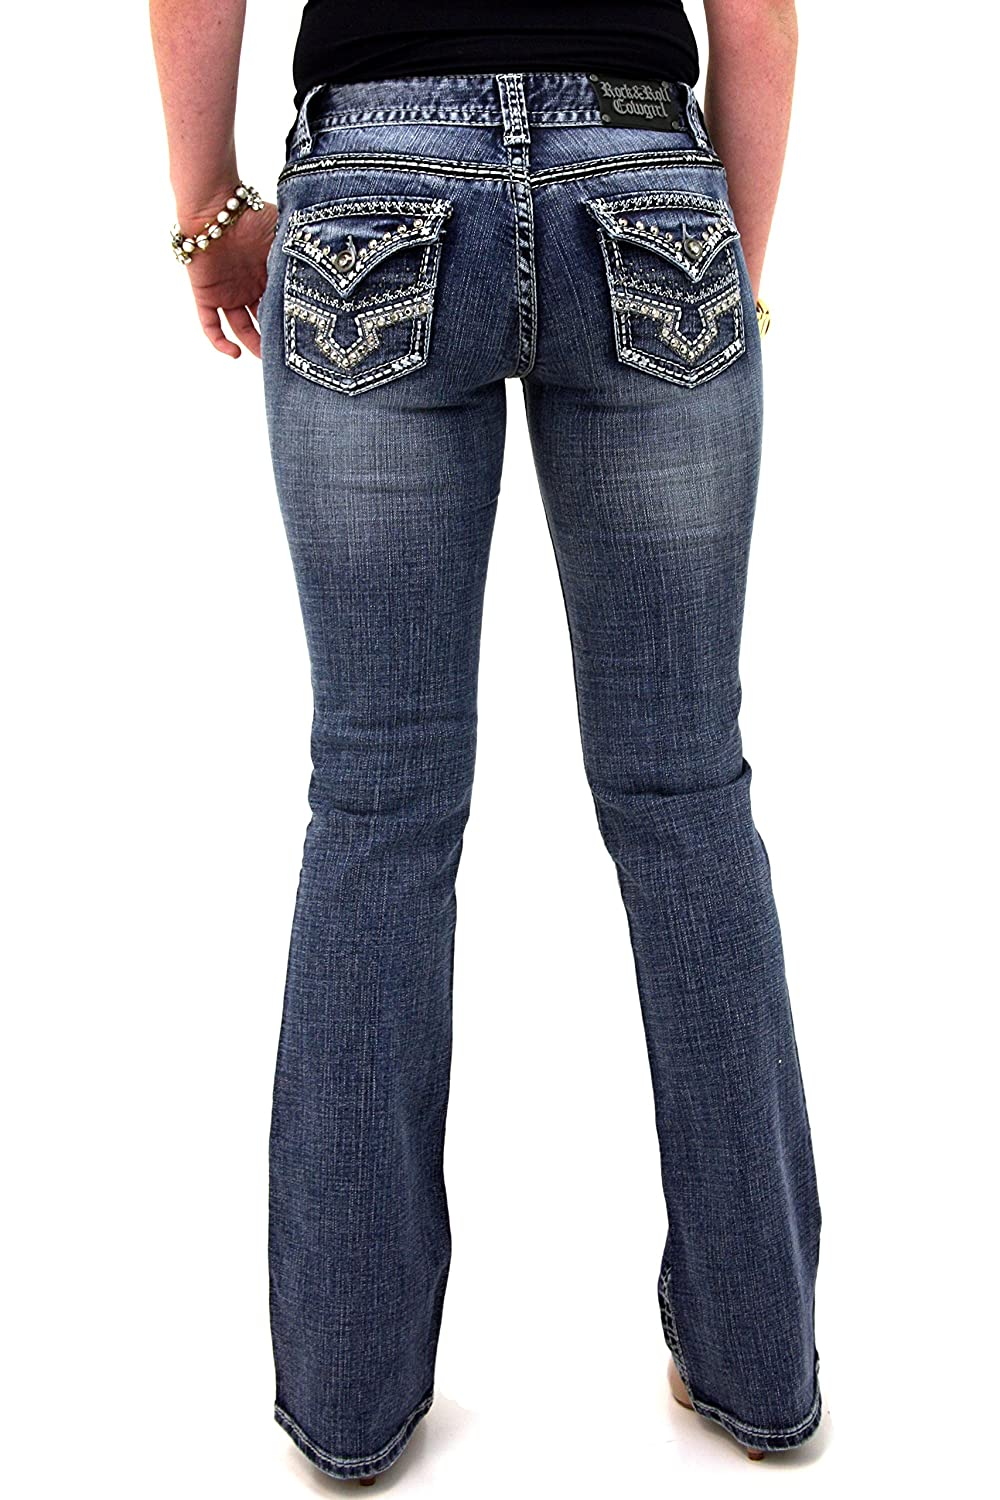 Rock and Roll Cowgirl W1-3693 Midrise Bootcut Denim